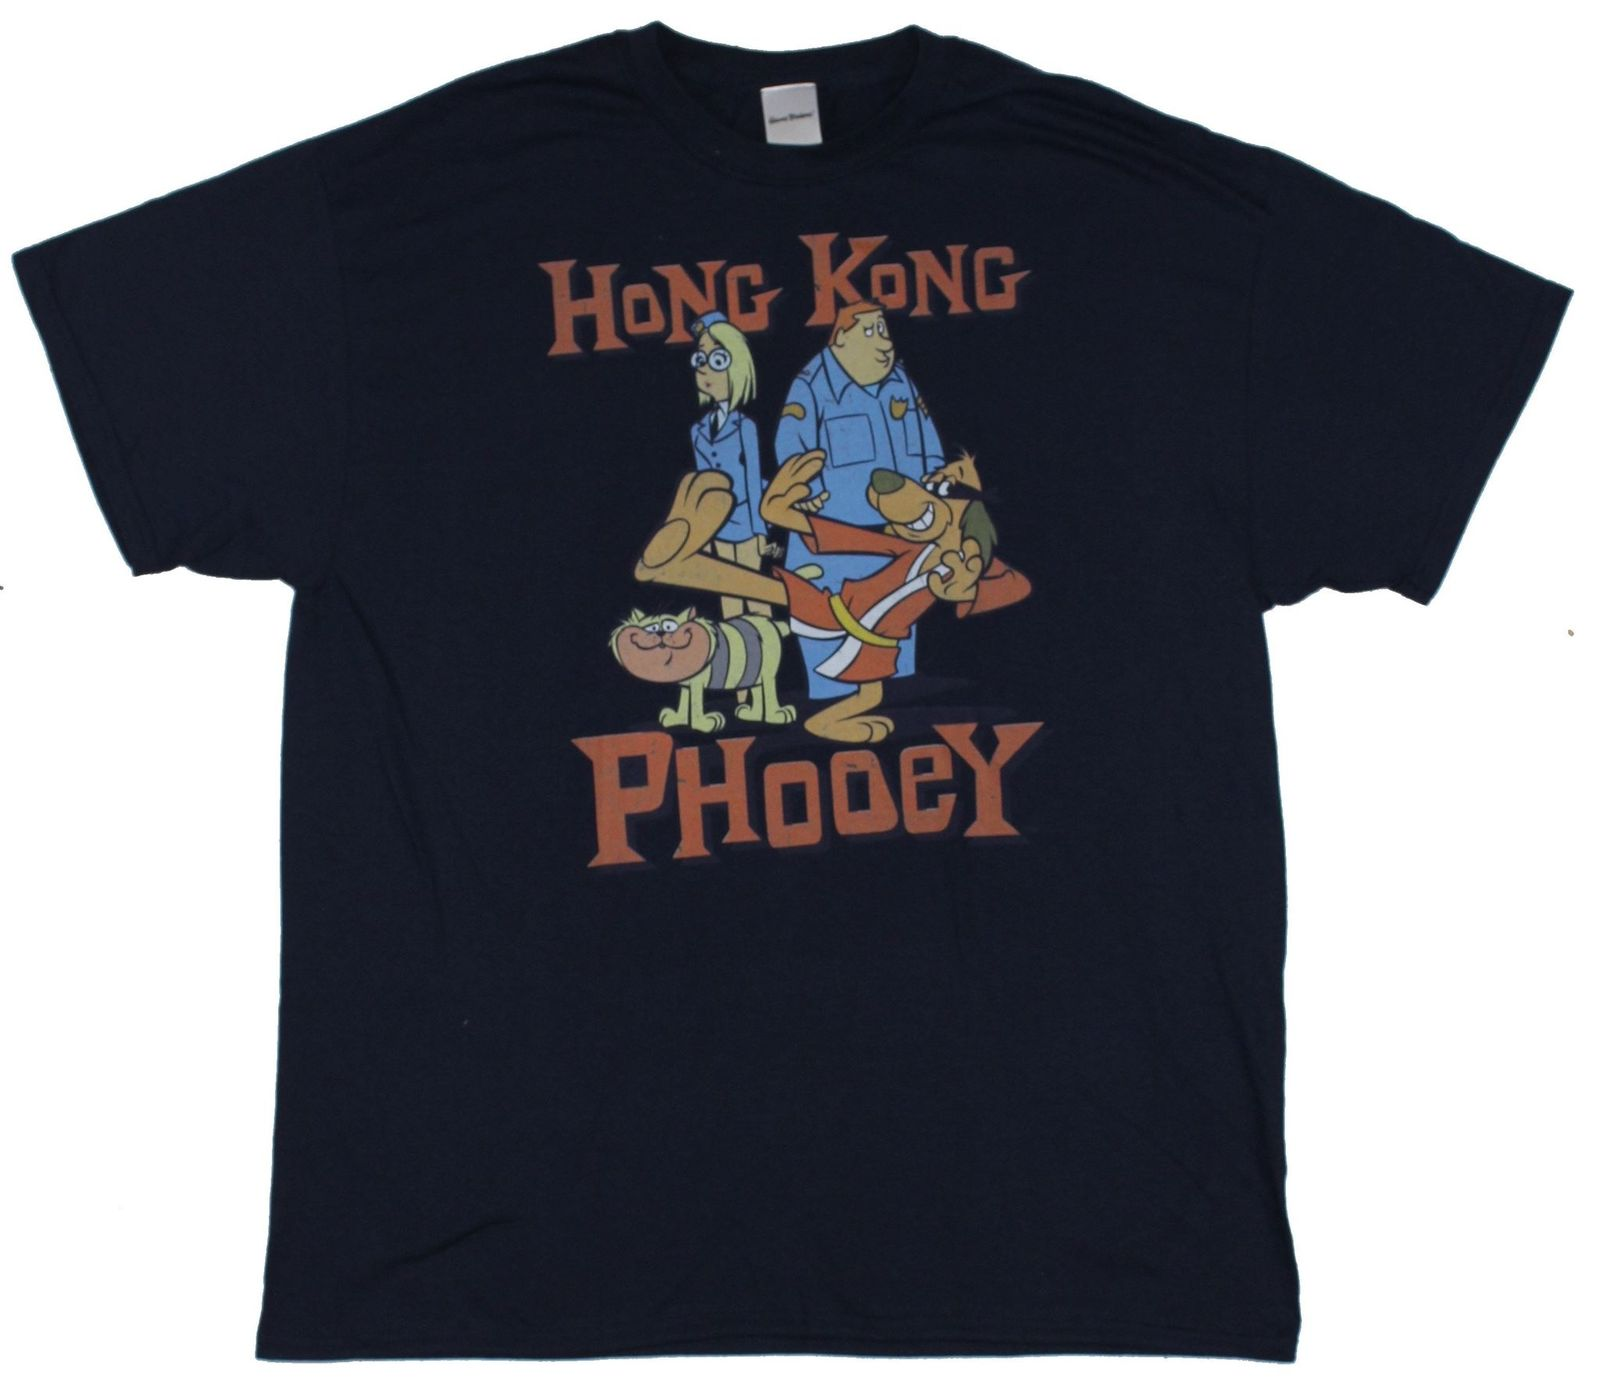 <font><b>Hong</b></font> <font><b>Kong</b></font> Phooey Mens T-Shirt - Distressed Karate Cast Image Cartoon t shirt men Unisex New Fashion <font><b>tshirt</b></font> free shipping funny image